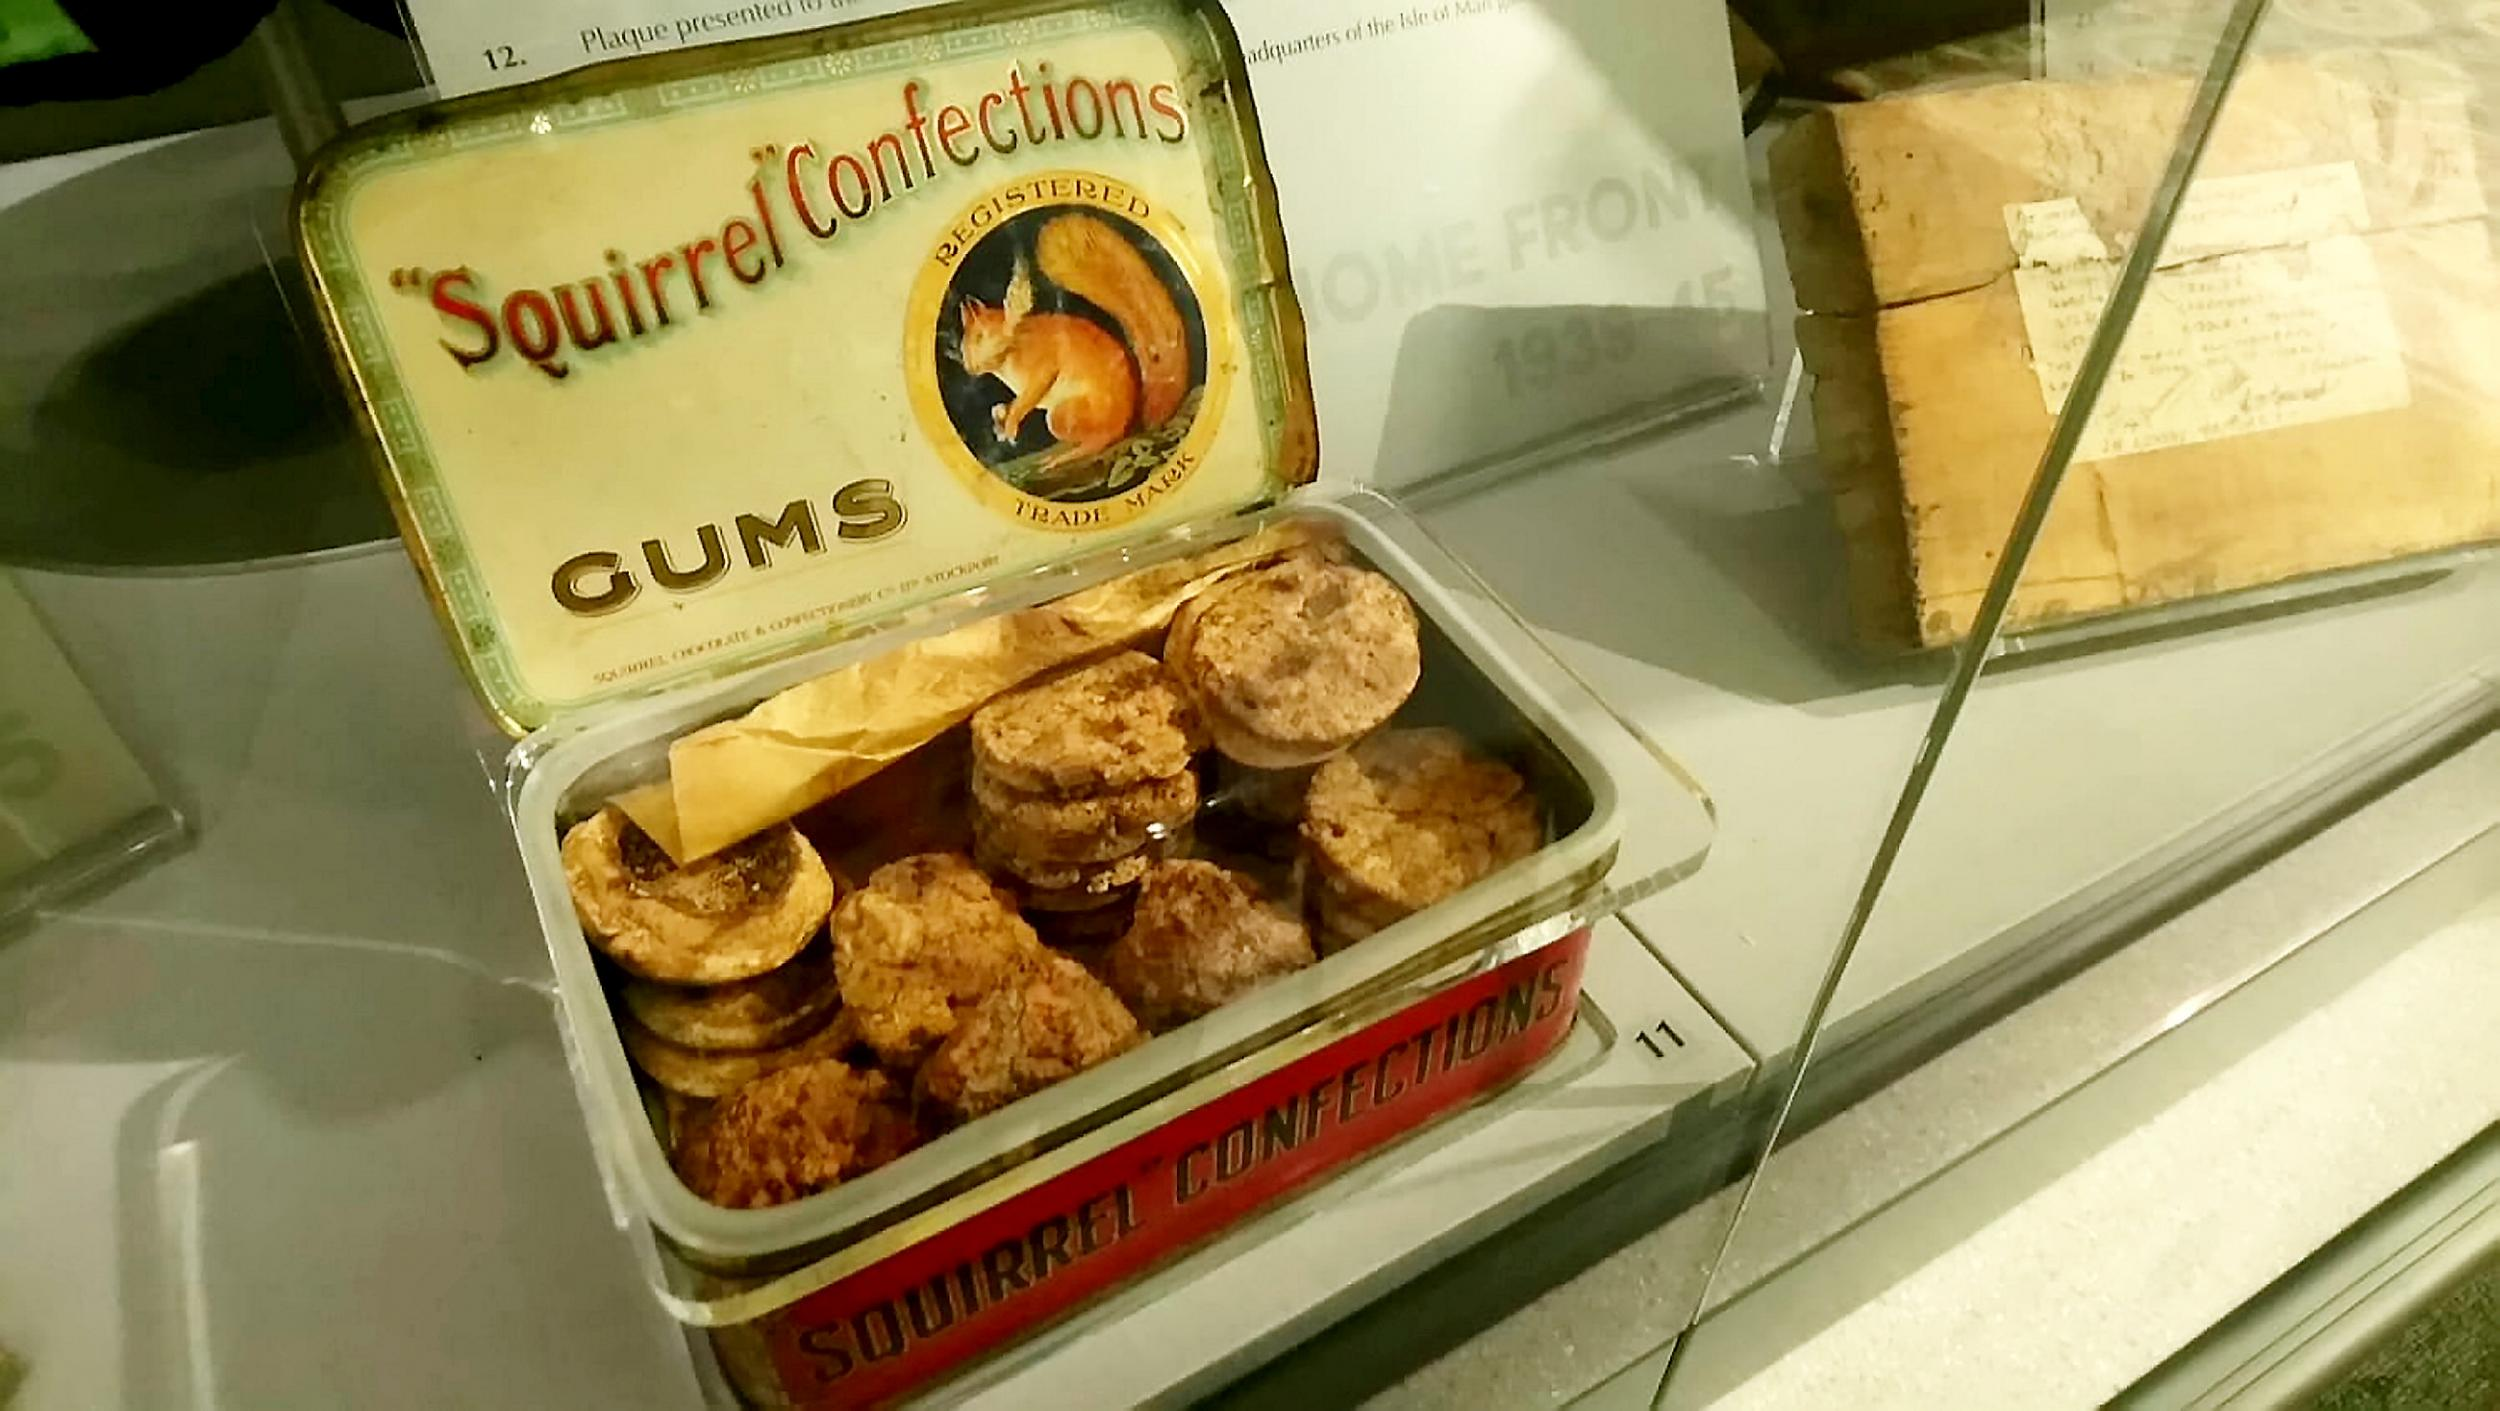 Christmas Pies.Christmas Mince Pies Made During Second World War Found